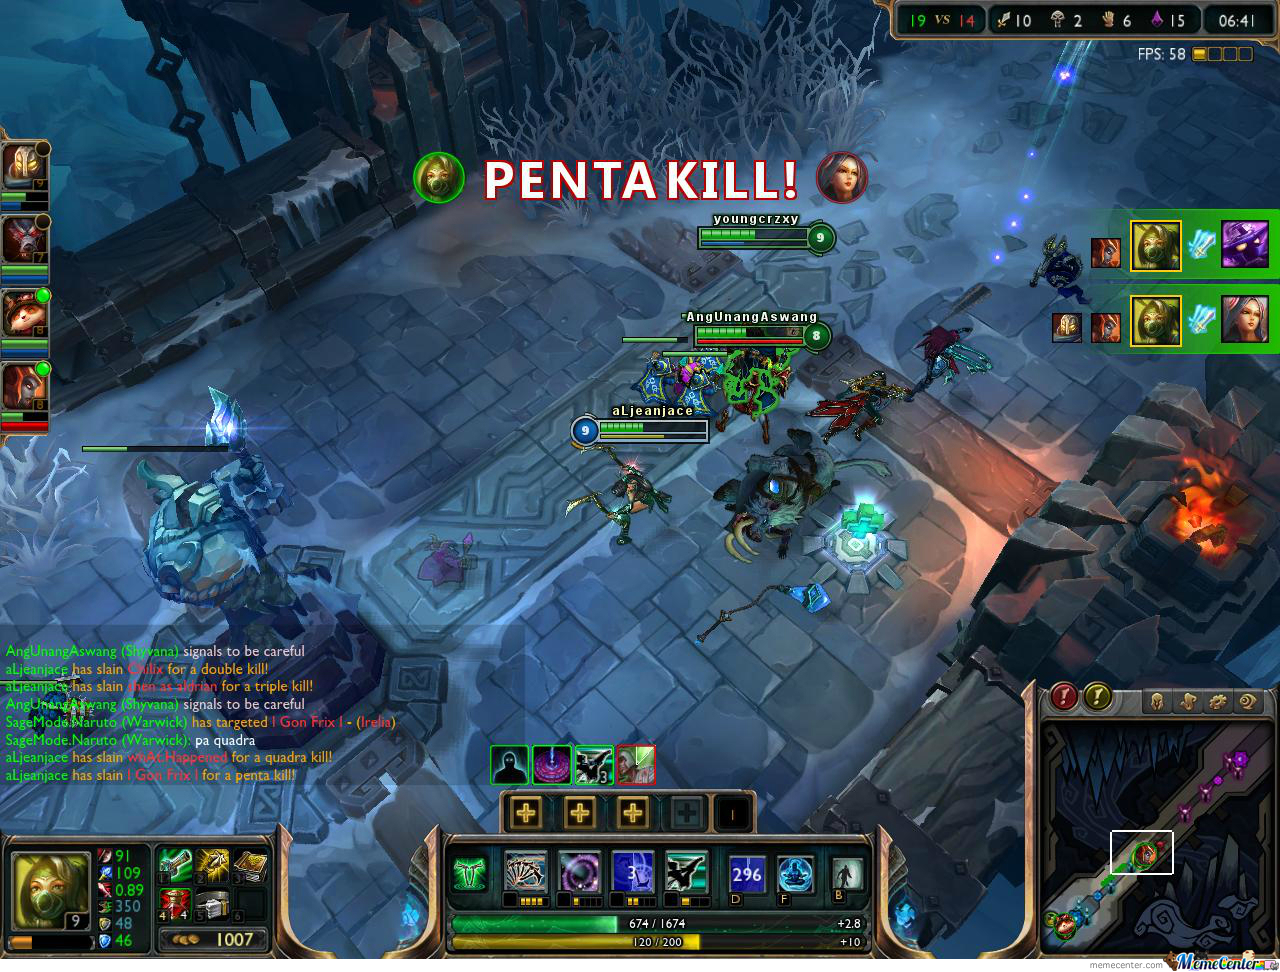 My First Penta Kill